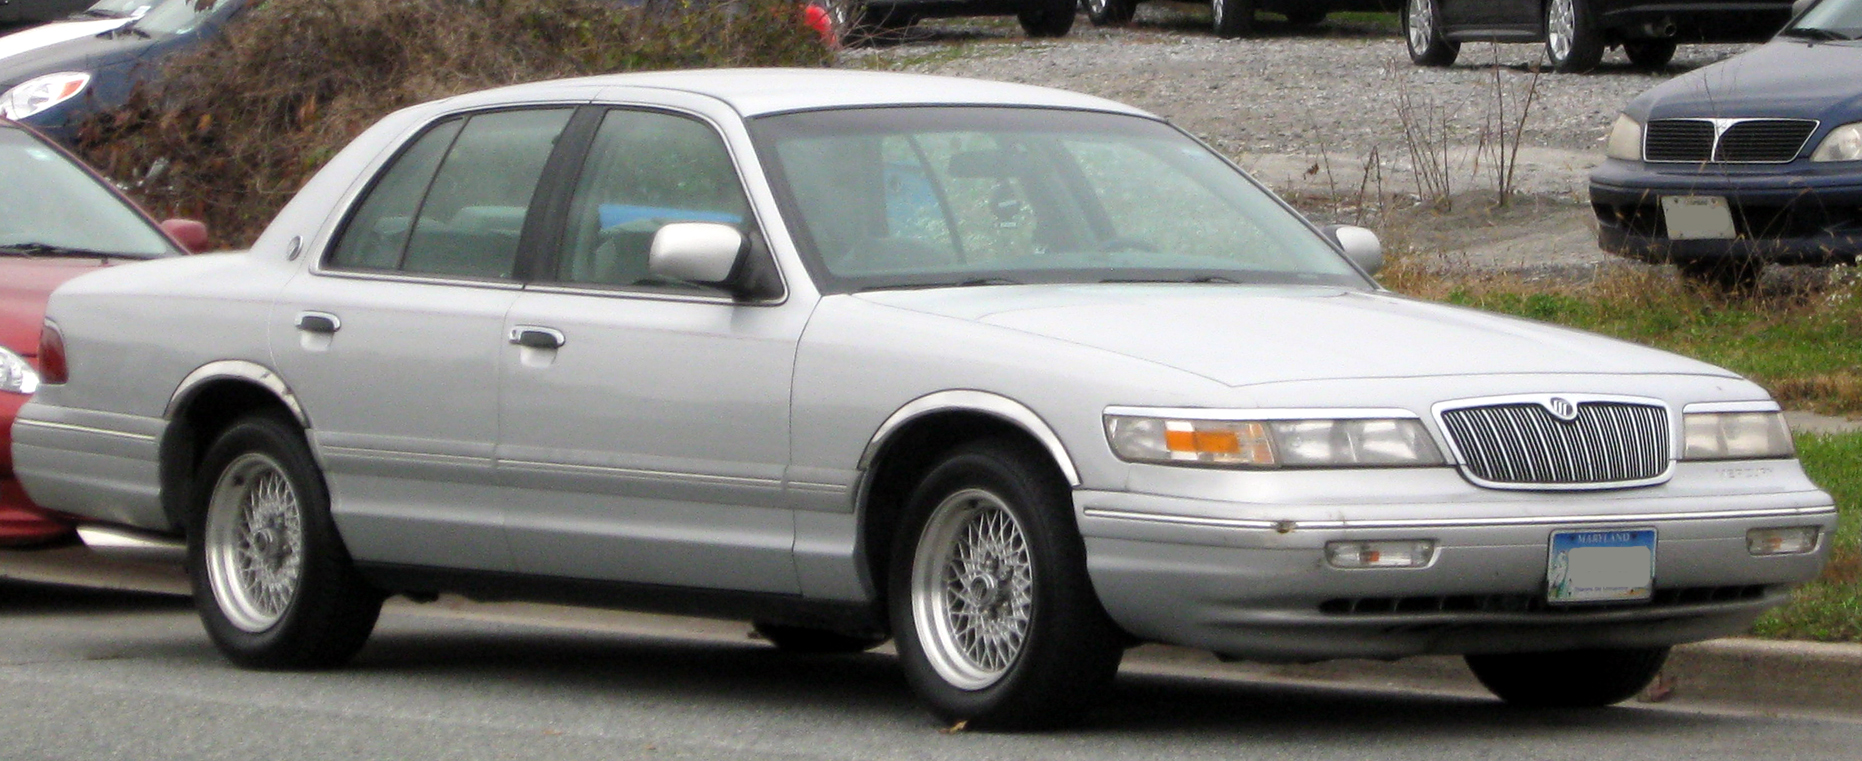 mercury grand marquis wallpaper #13